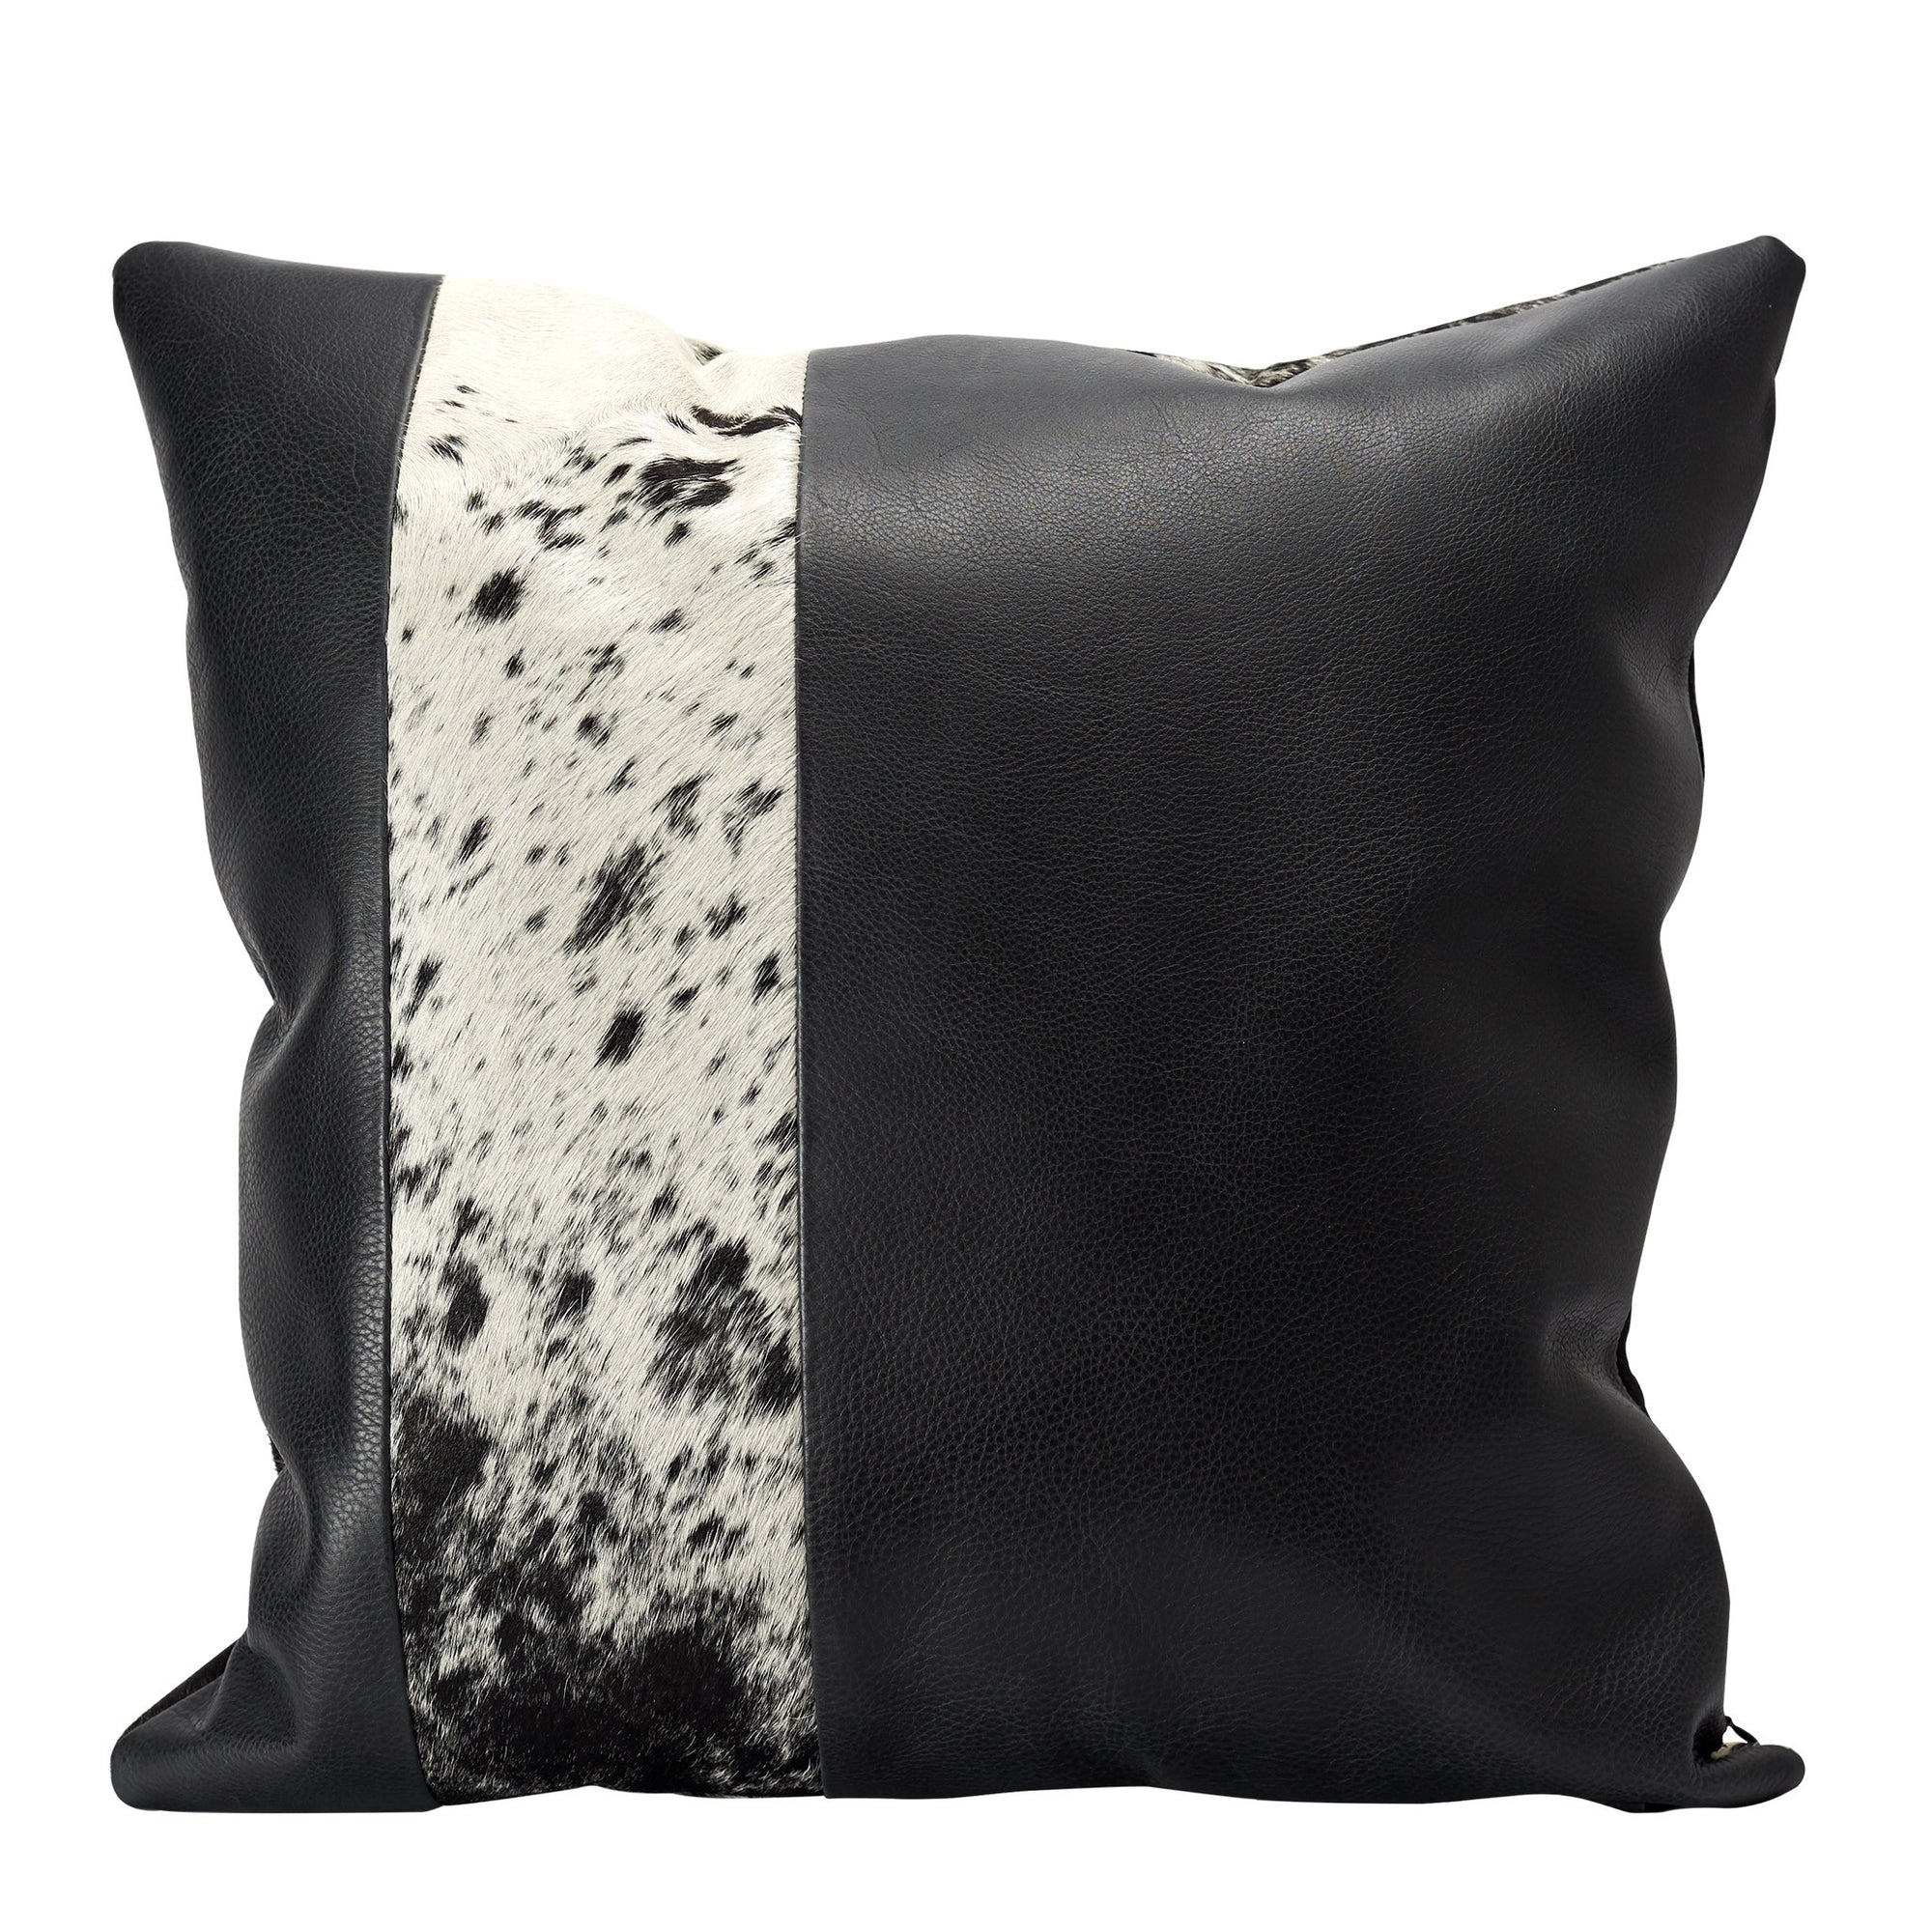 Black Dual Leather Cowhide Cushion. Couch Decoration, Lounge, Bench, Sofa  Cushion Covers